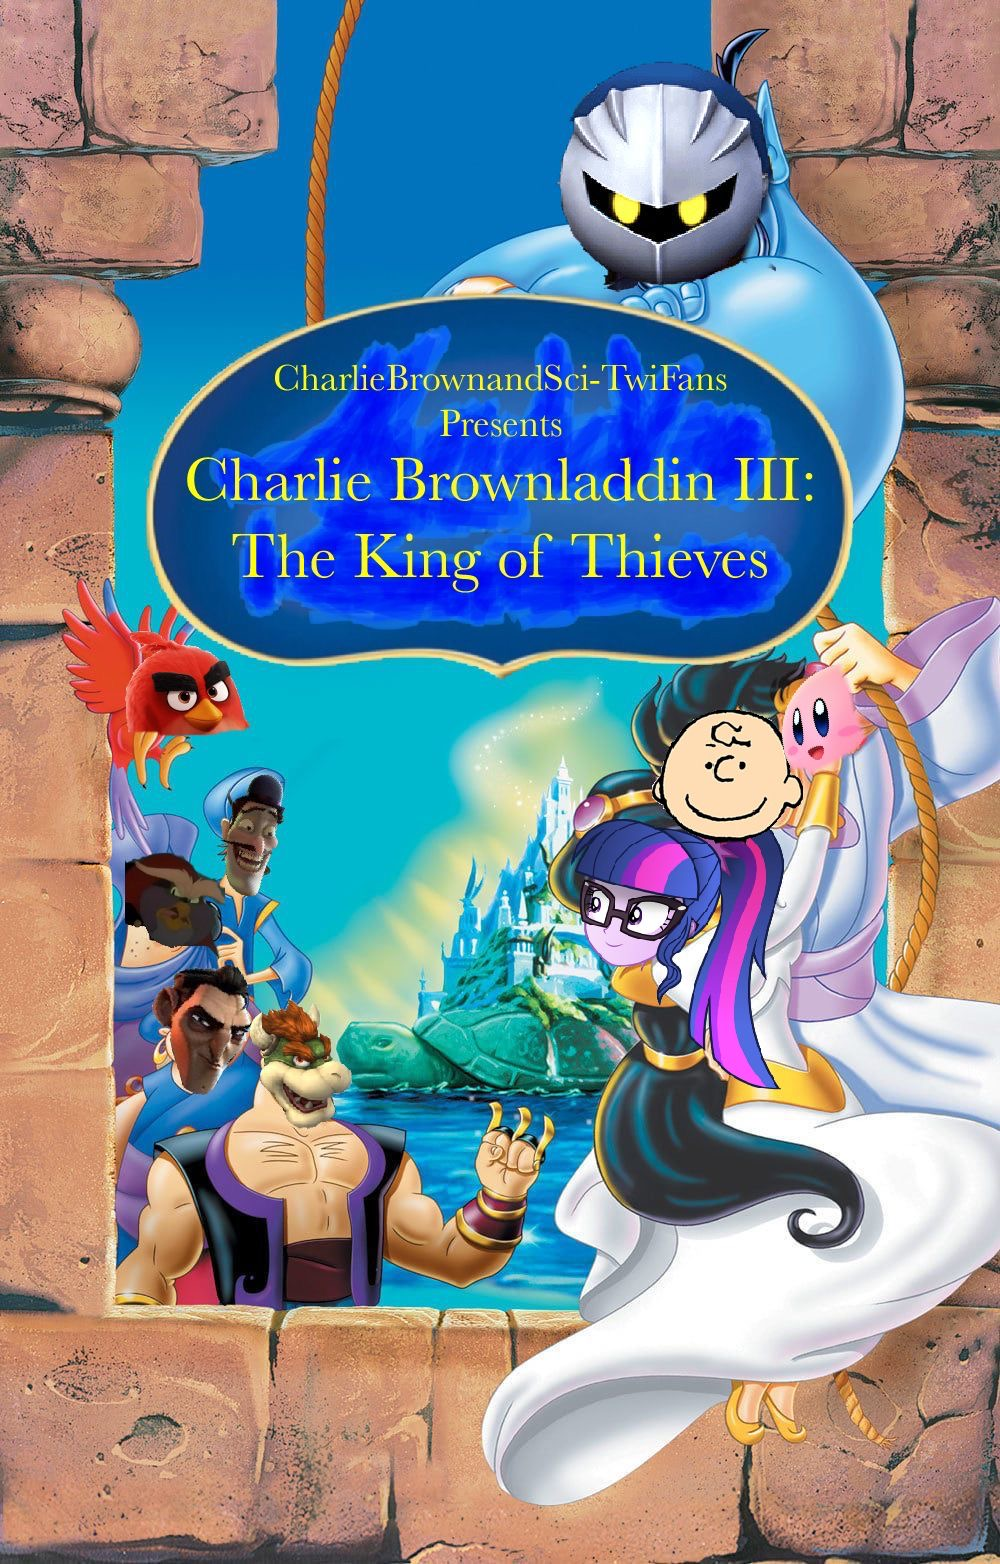 Charlie Brownladdin III: The King of Thieves (CharlieBrownandSci-TwiFans Style)